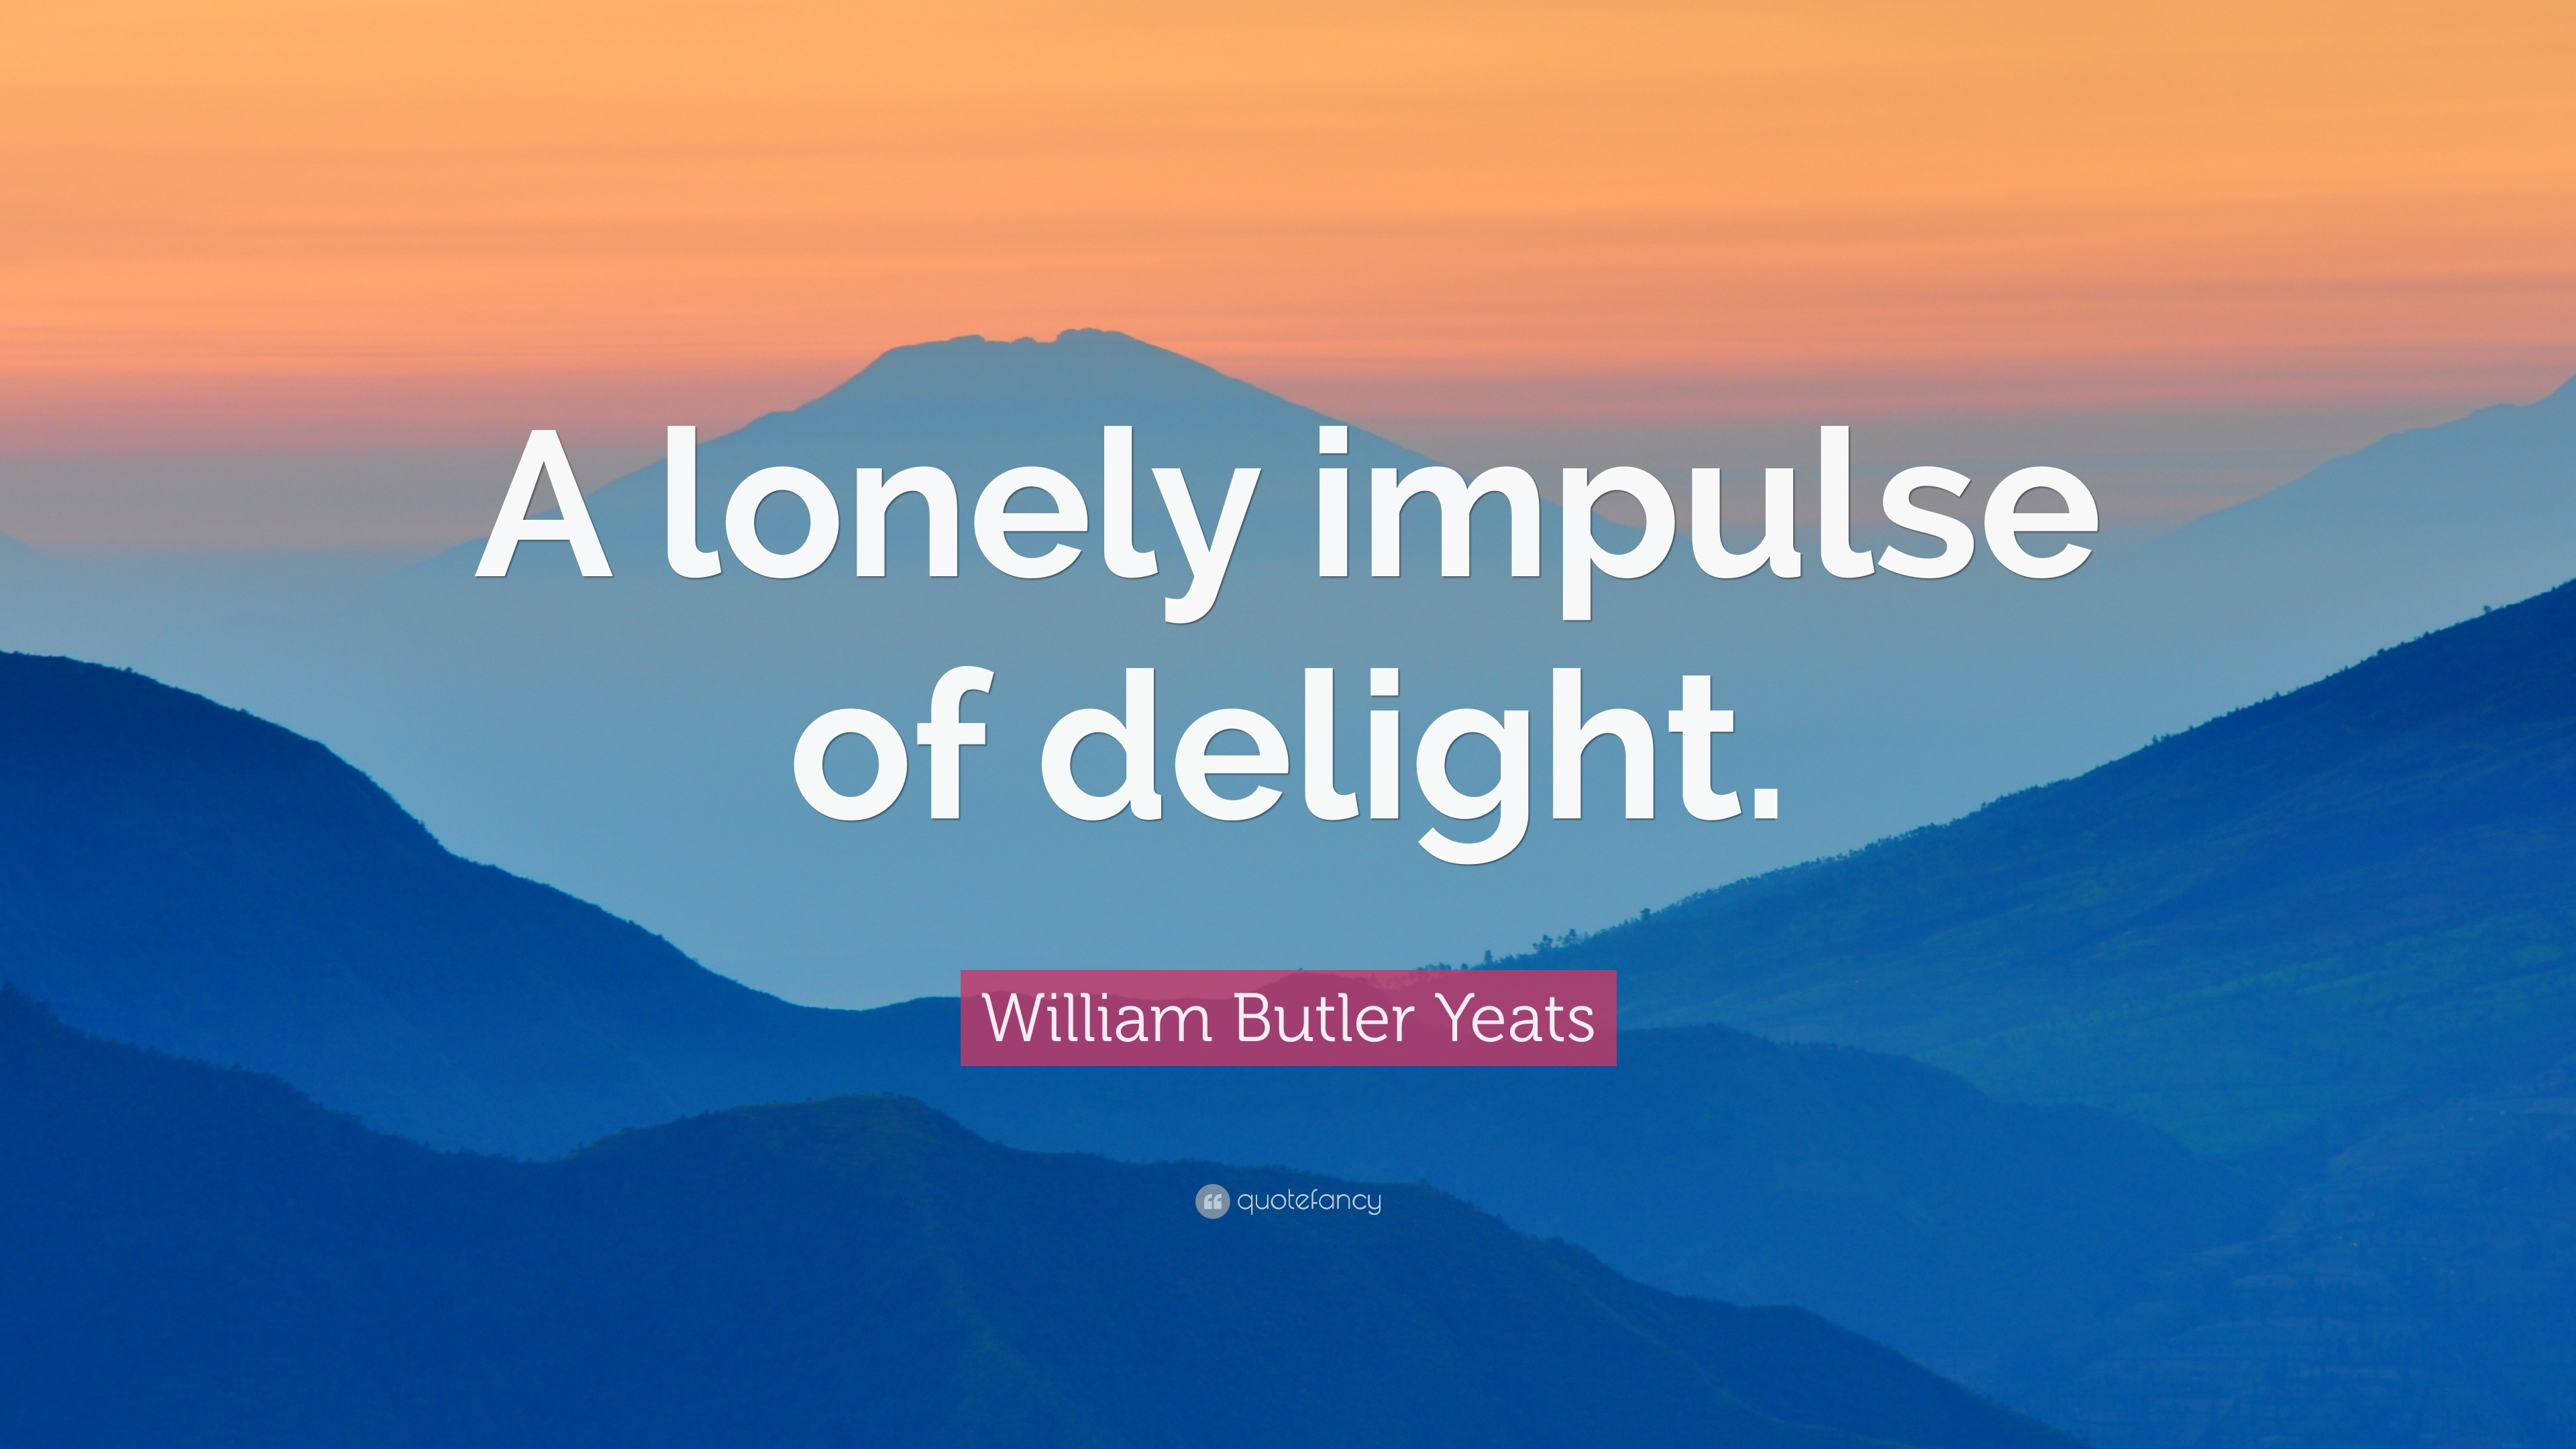 a lonely impulse of delight